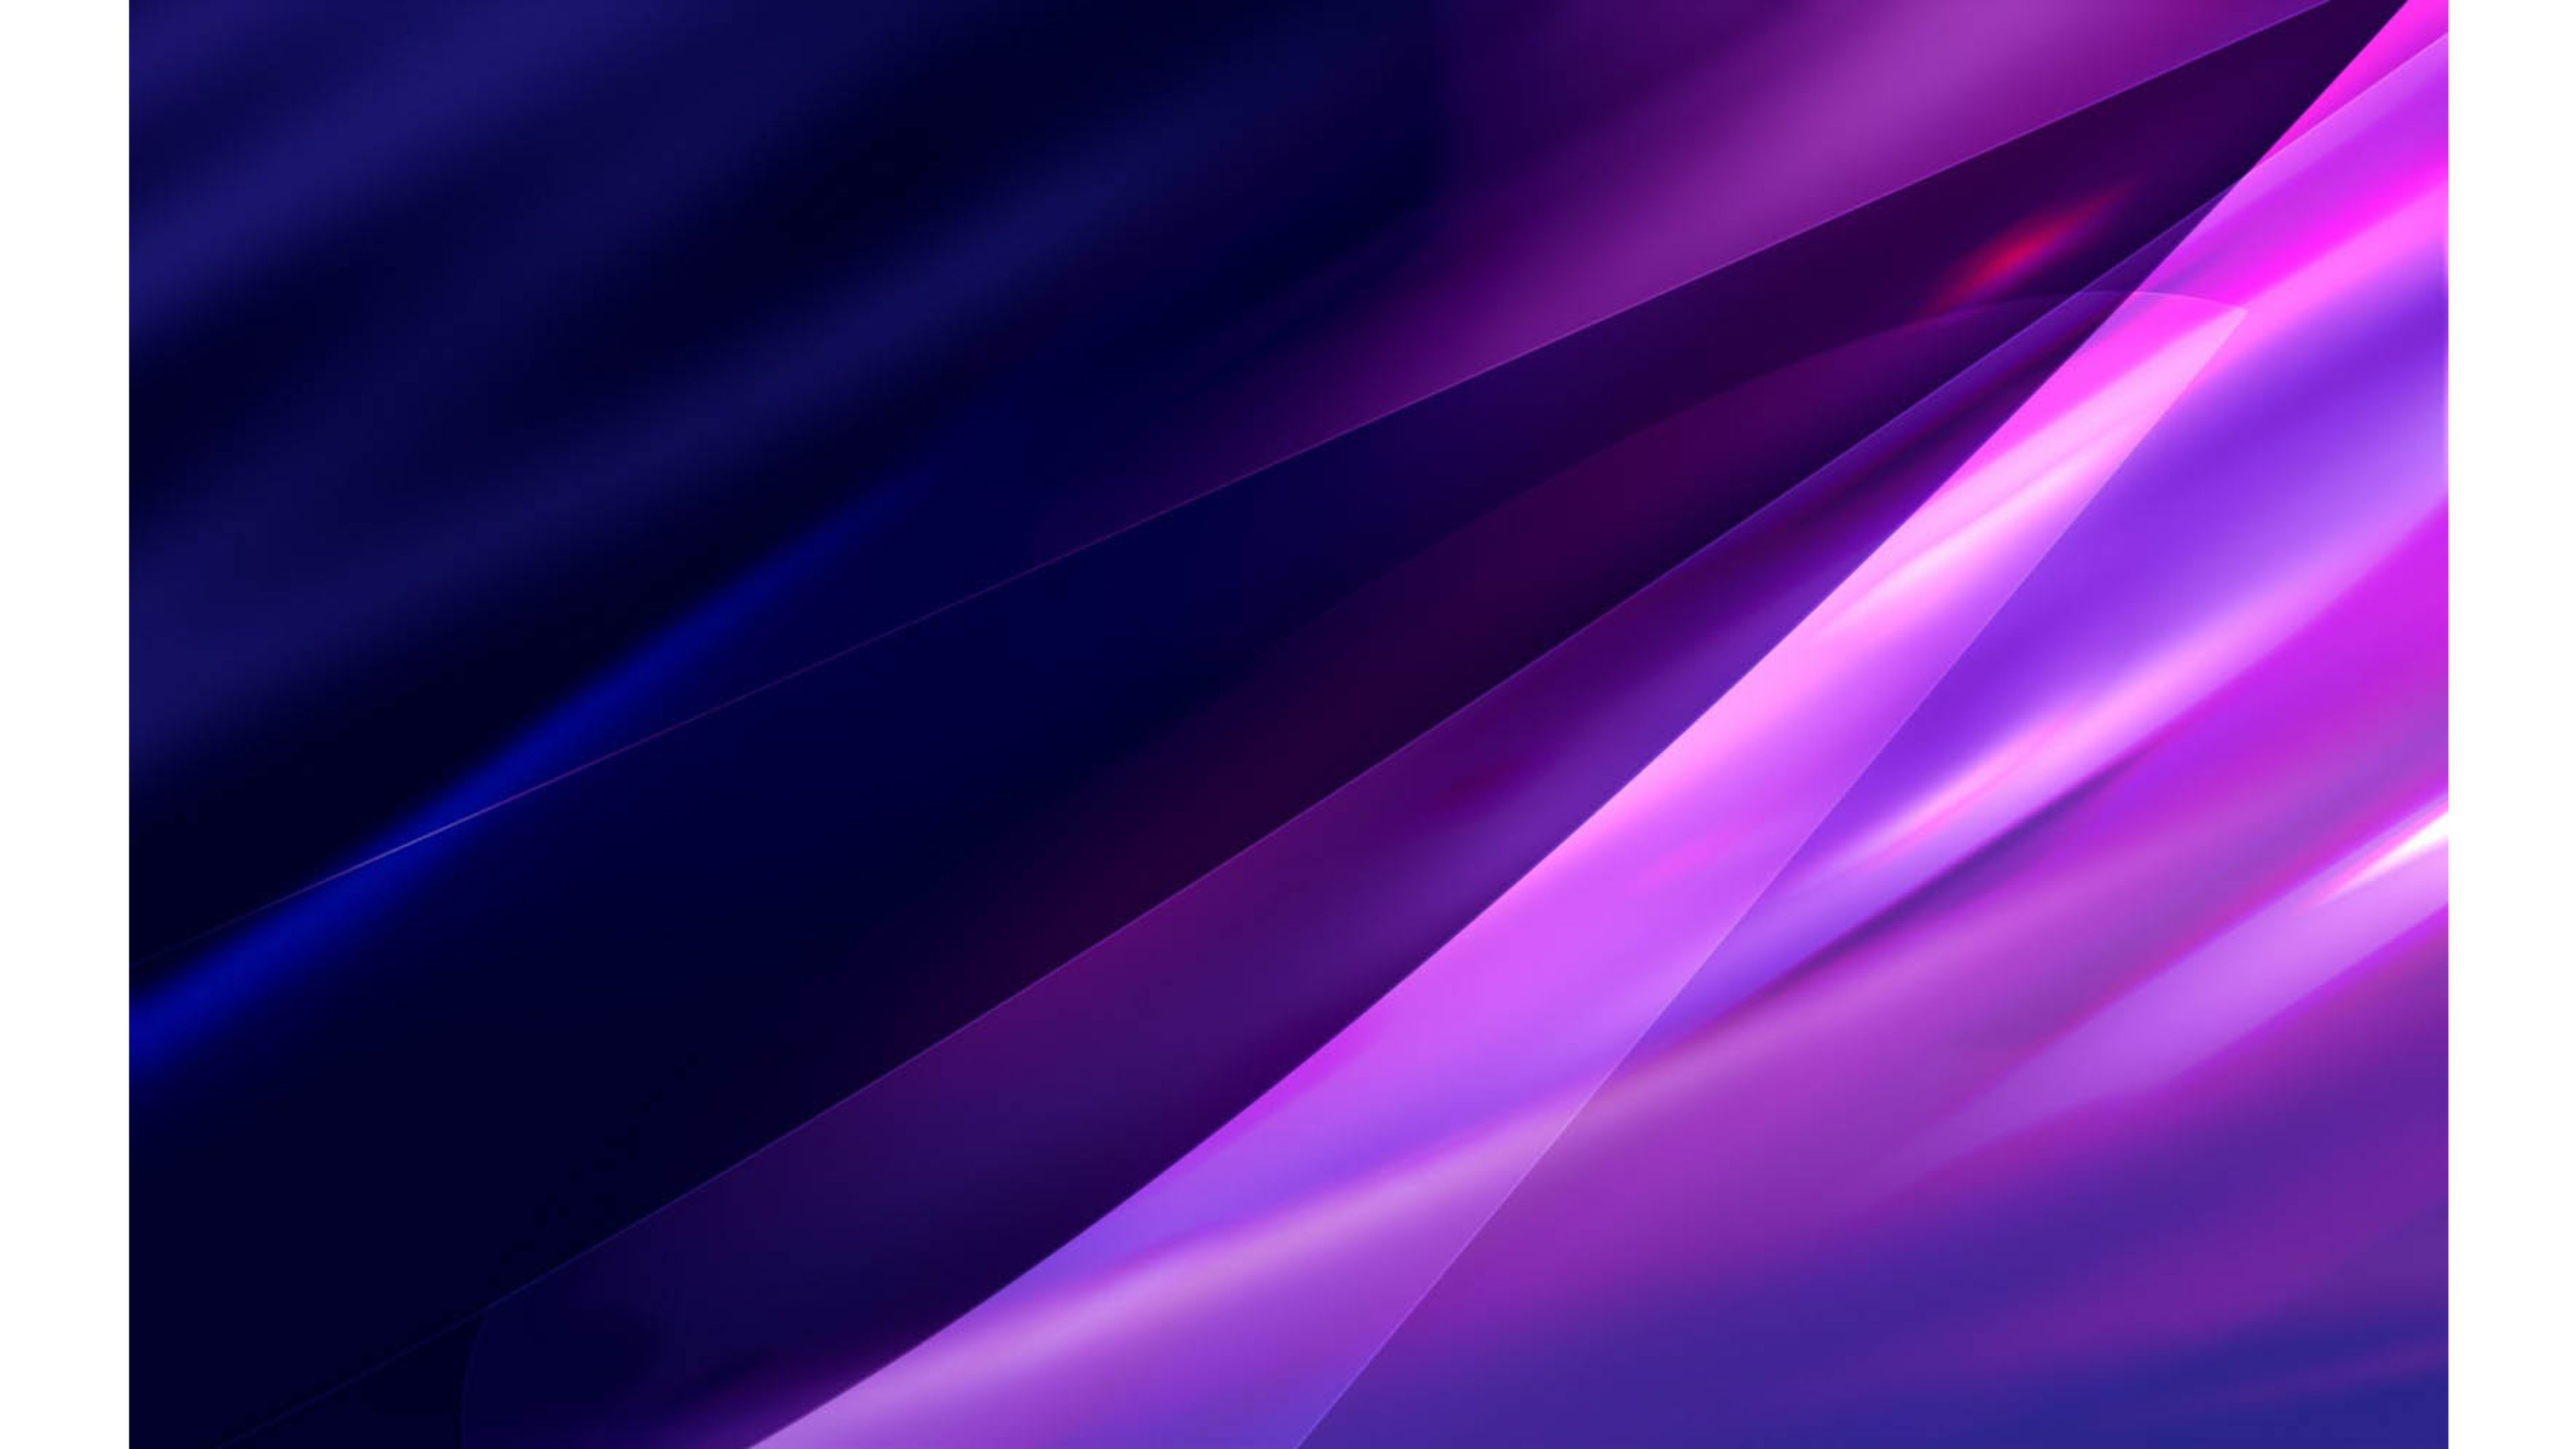 3840x2160 Purple Waves Abstract 4K Wallpaper | Free 4K Wallpaper